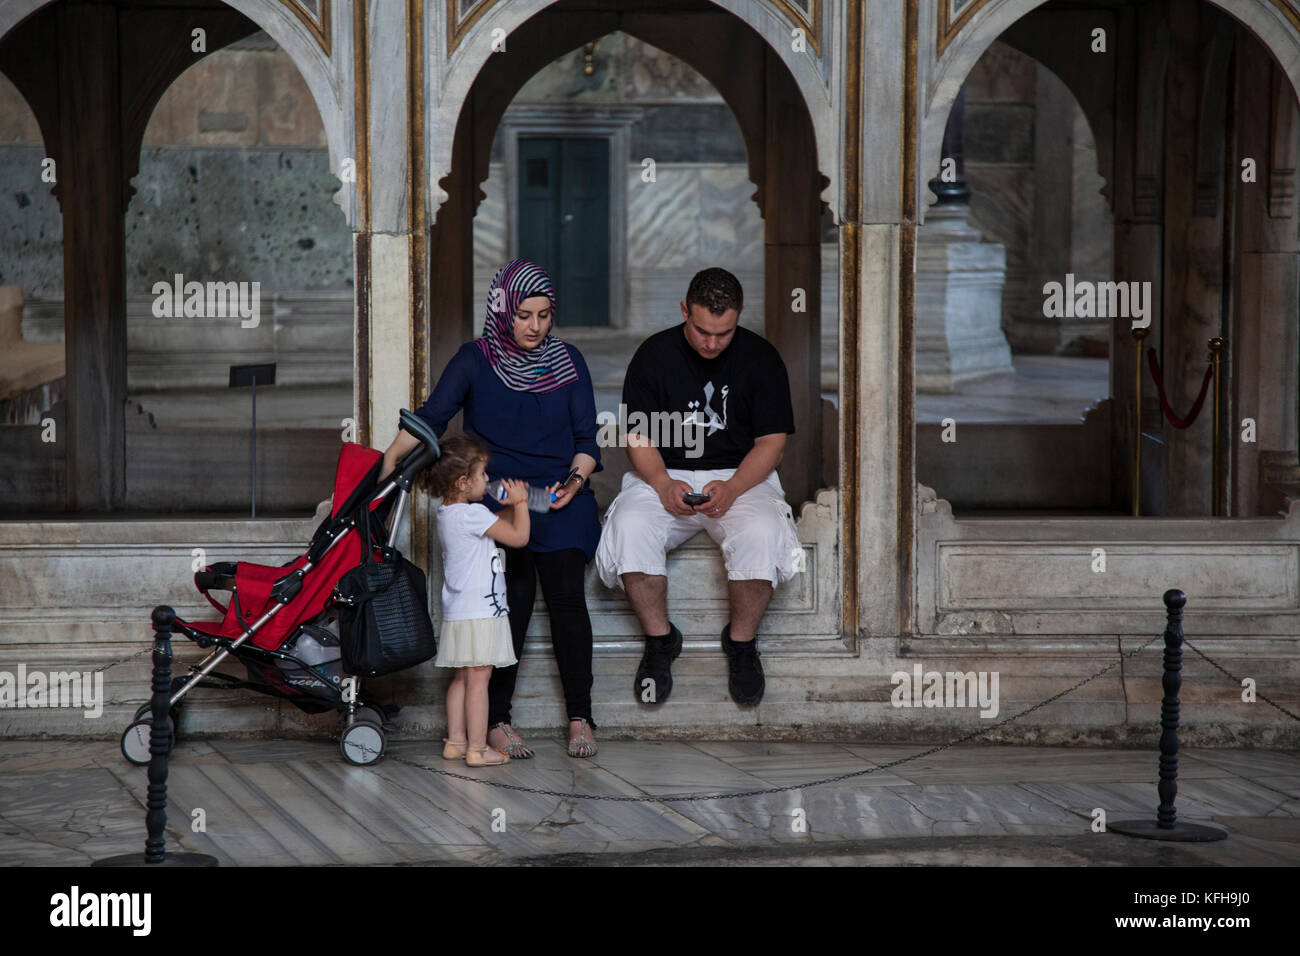 A moslem family takes a break while visiting the Apse Mosaic in the Hagia Sophia in Istanbul, Turkey. - Stock Image